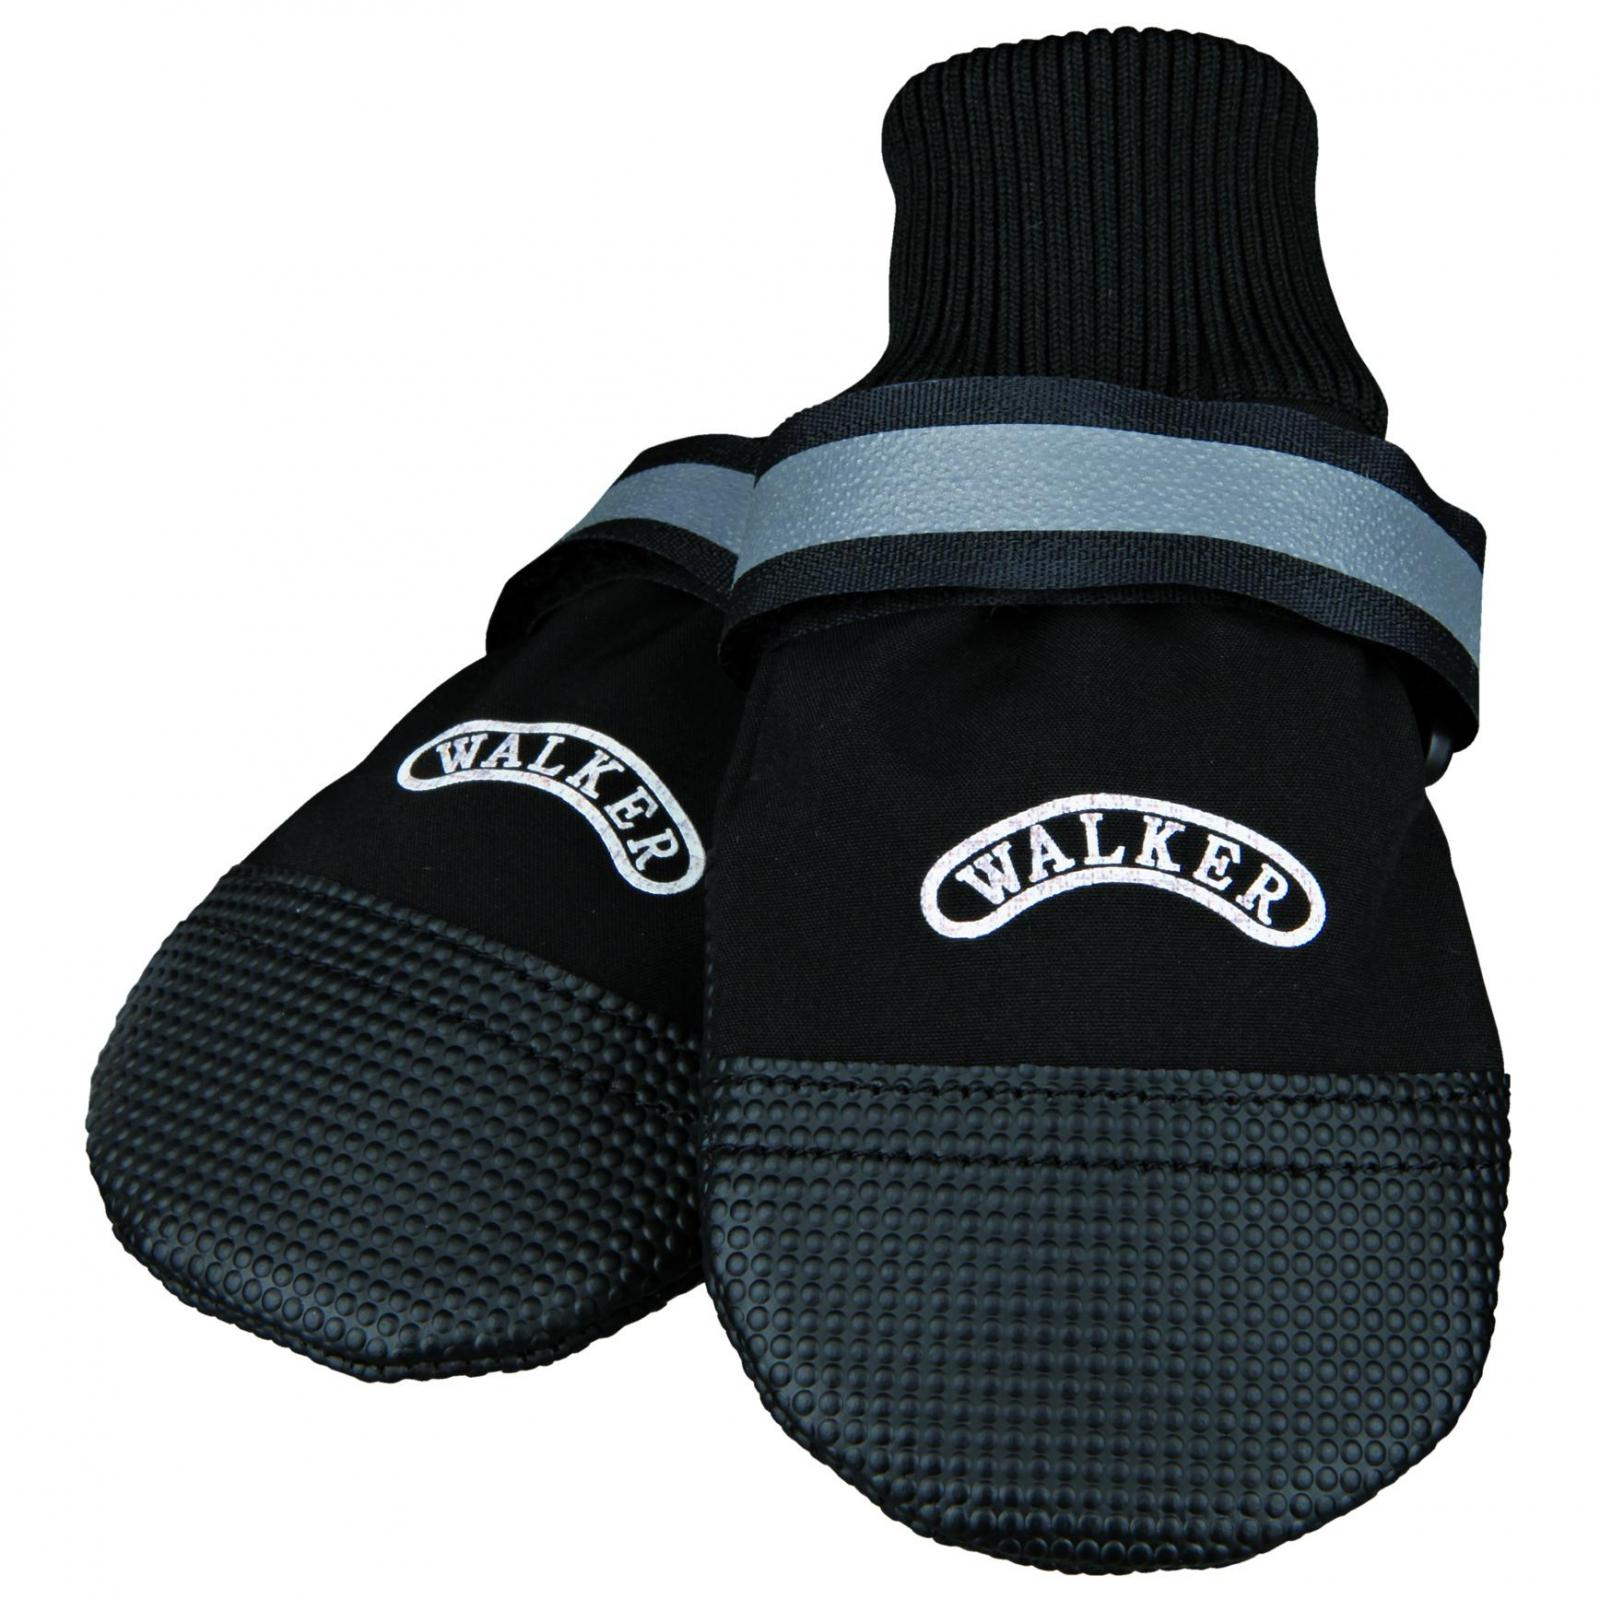 Trixie Trixie Walker Care Comfort Boots